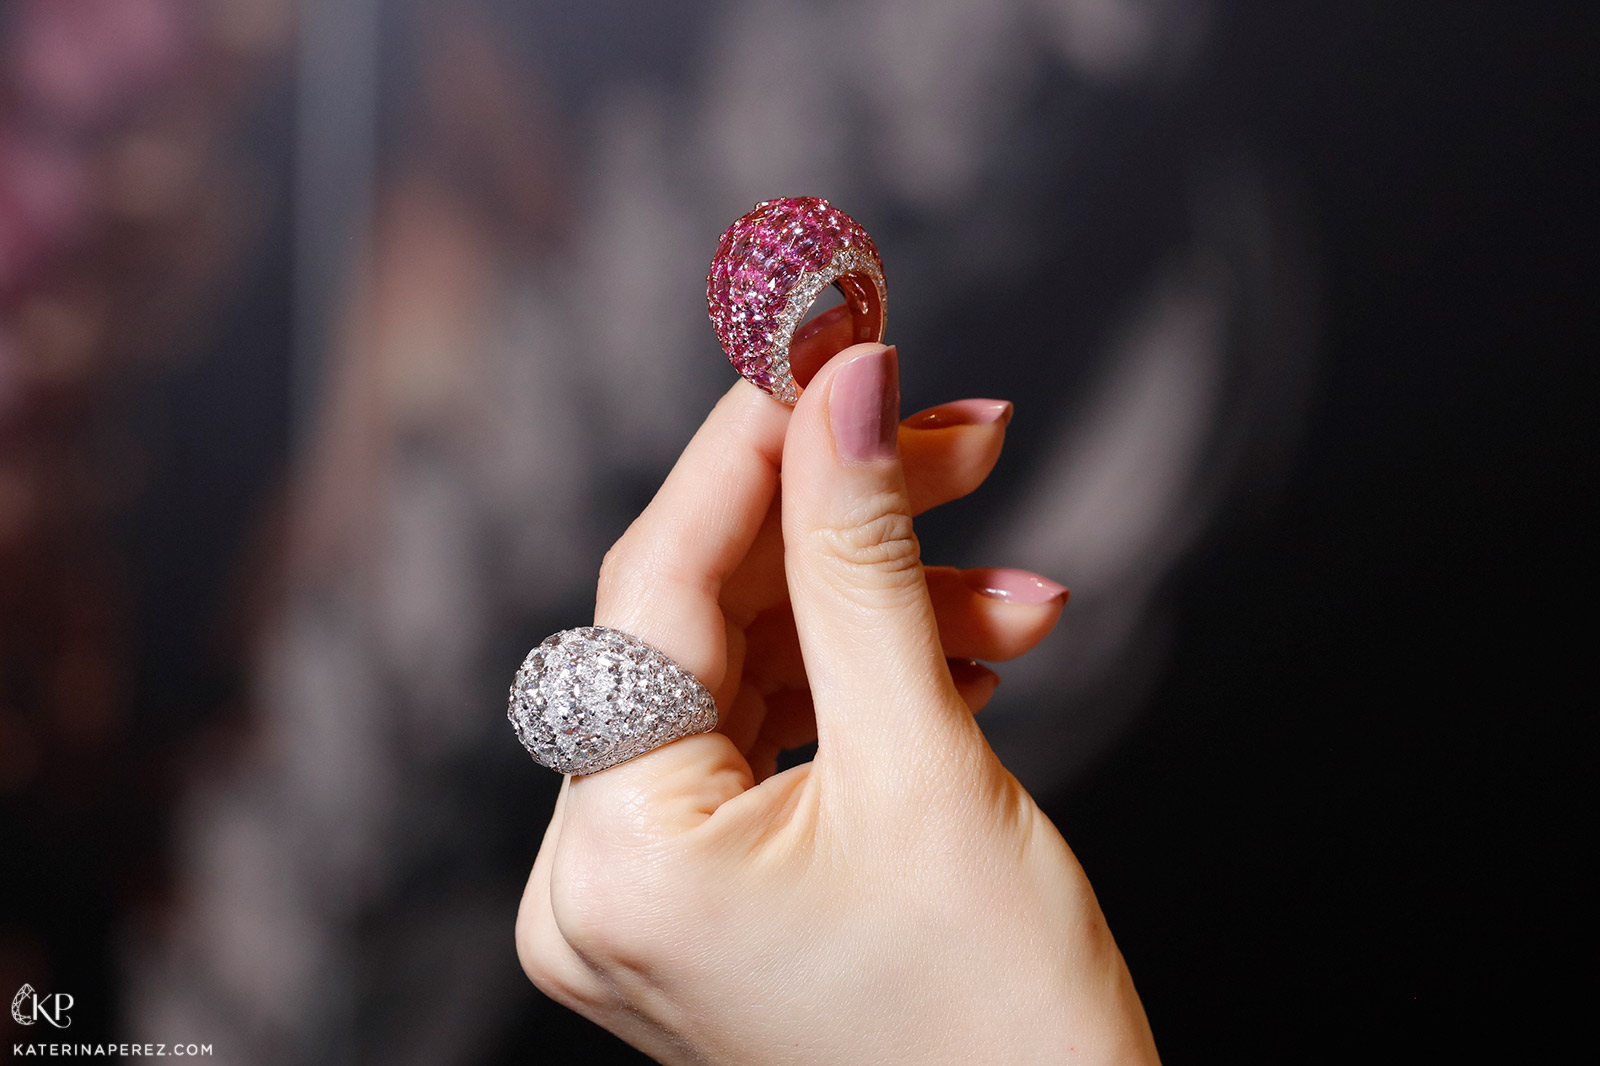 Baenteli Sphere rings with pink sapphires and diamonds